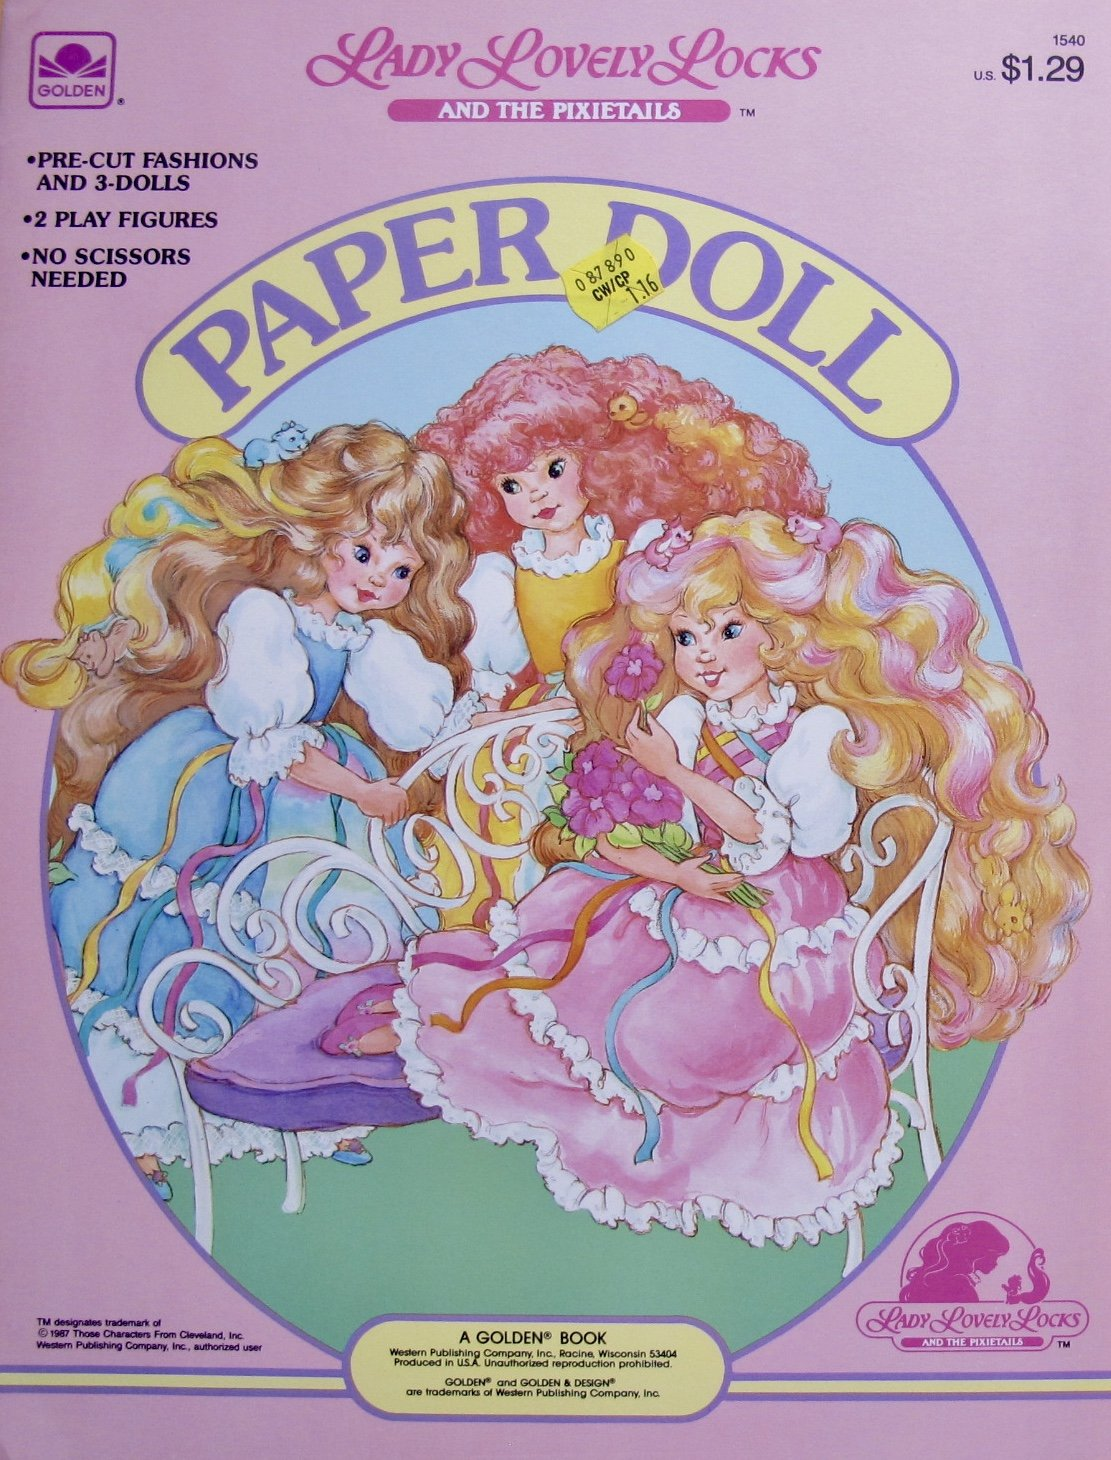 Golden LADY LOVELY LOCKS and The PIXIETAILS PAPER DOLL BOOK (UNCUT) w 3 Card Stock DOLLS, 2 Play FIGURES, Pre-Cut FASHIONS (1987 Western)